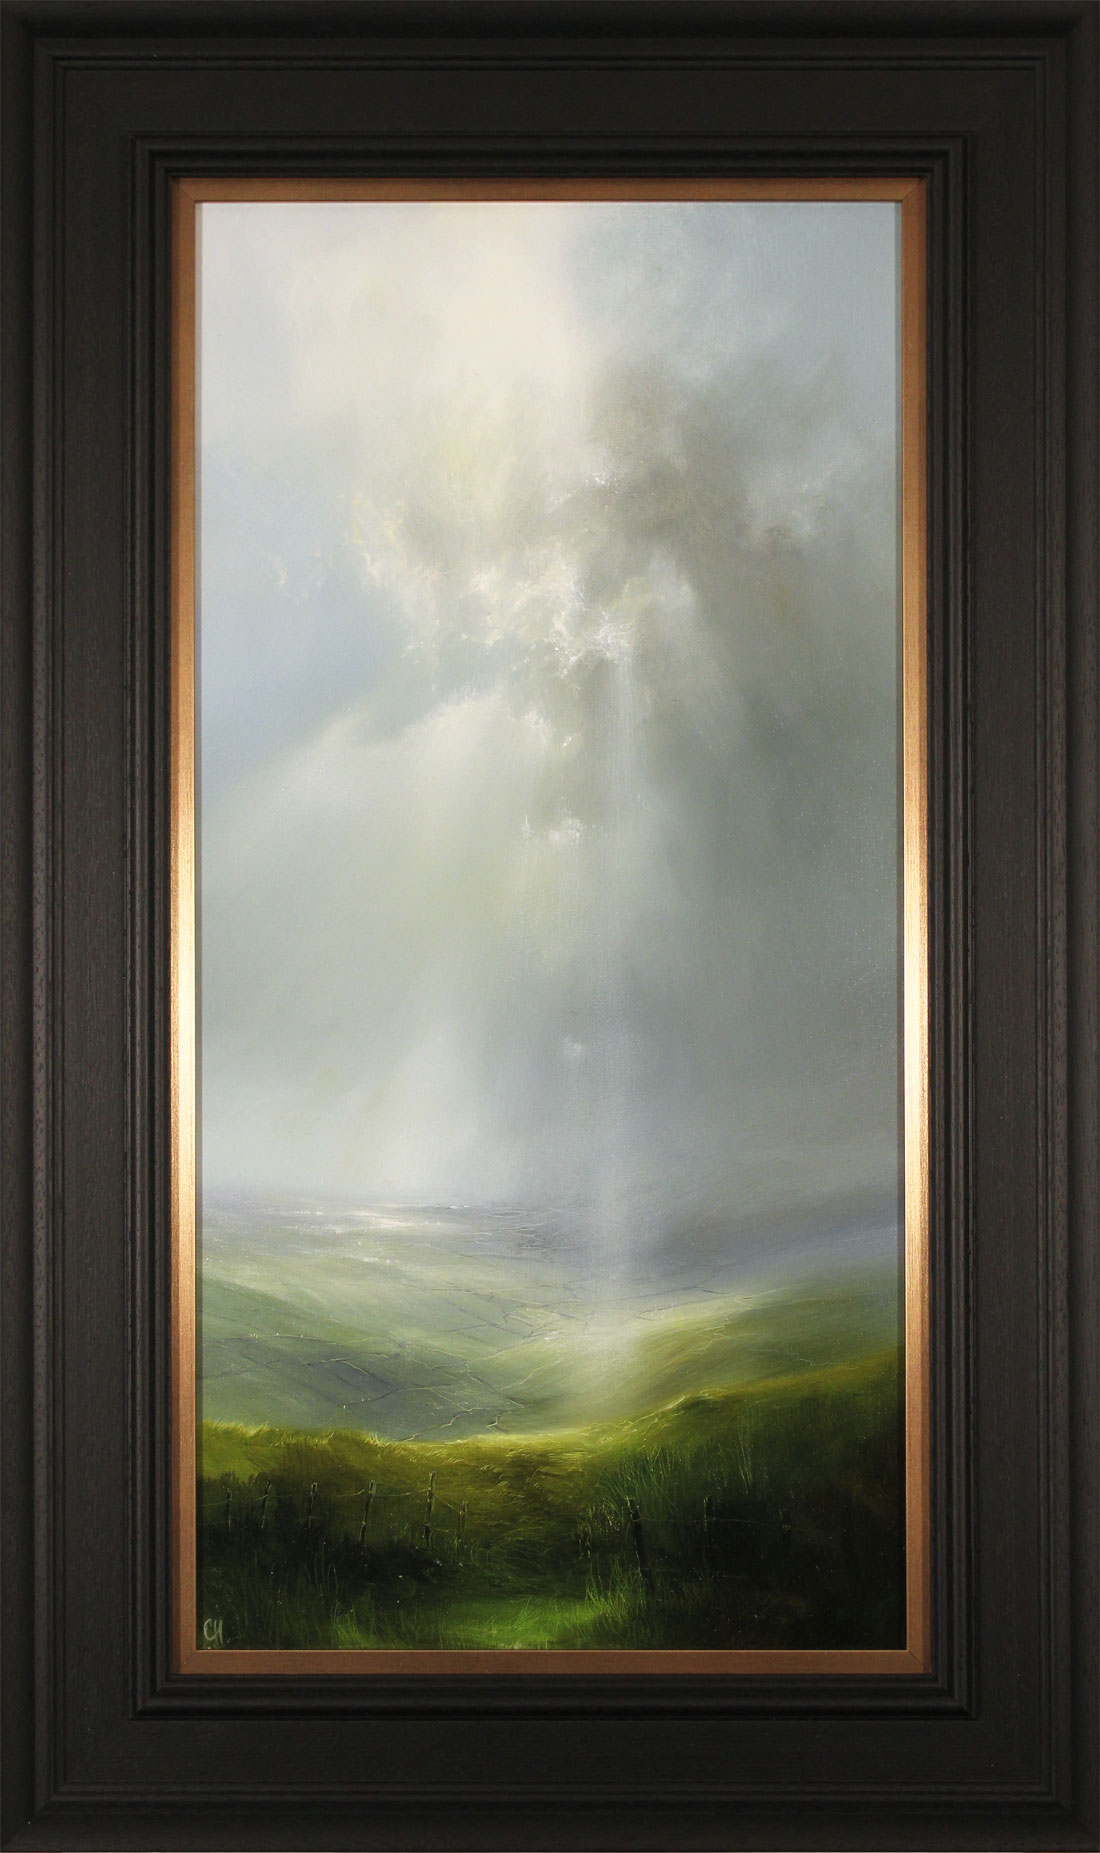 Clare Haley, Original oil painting on panel, Tall Skies Over the Valley. Click to enlarge